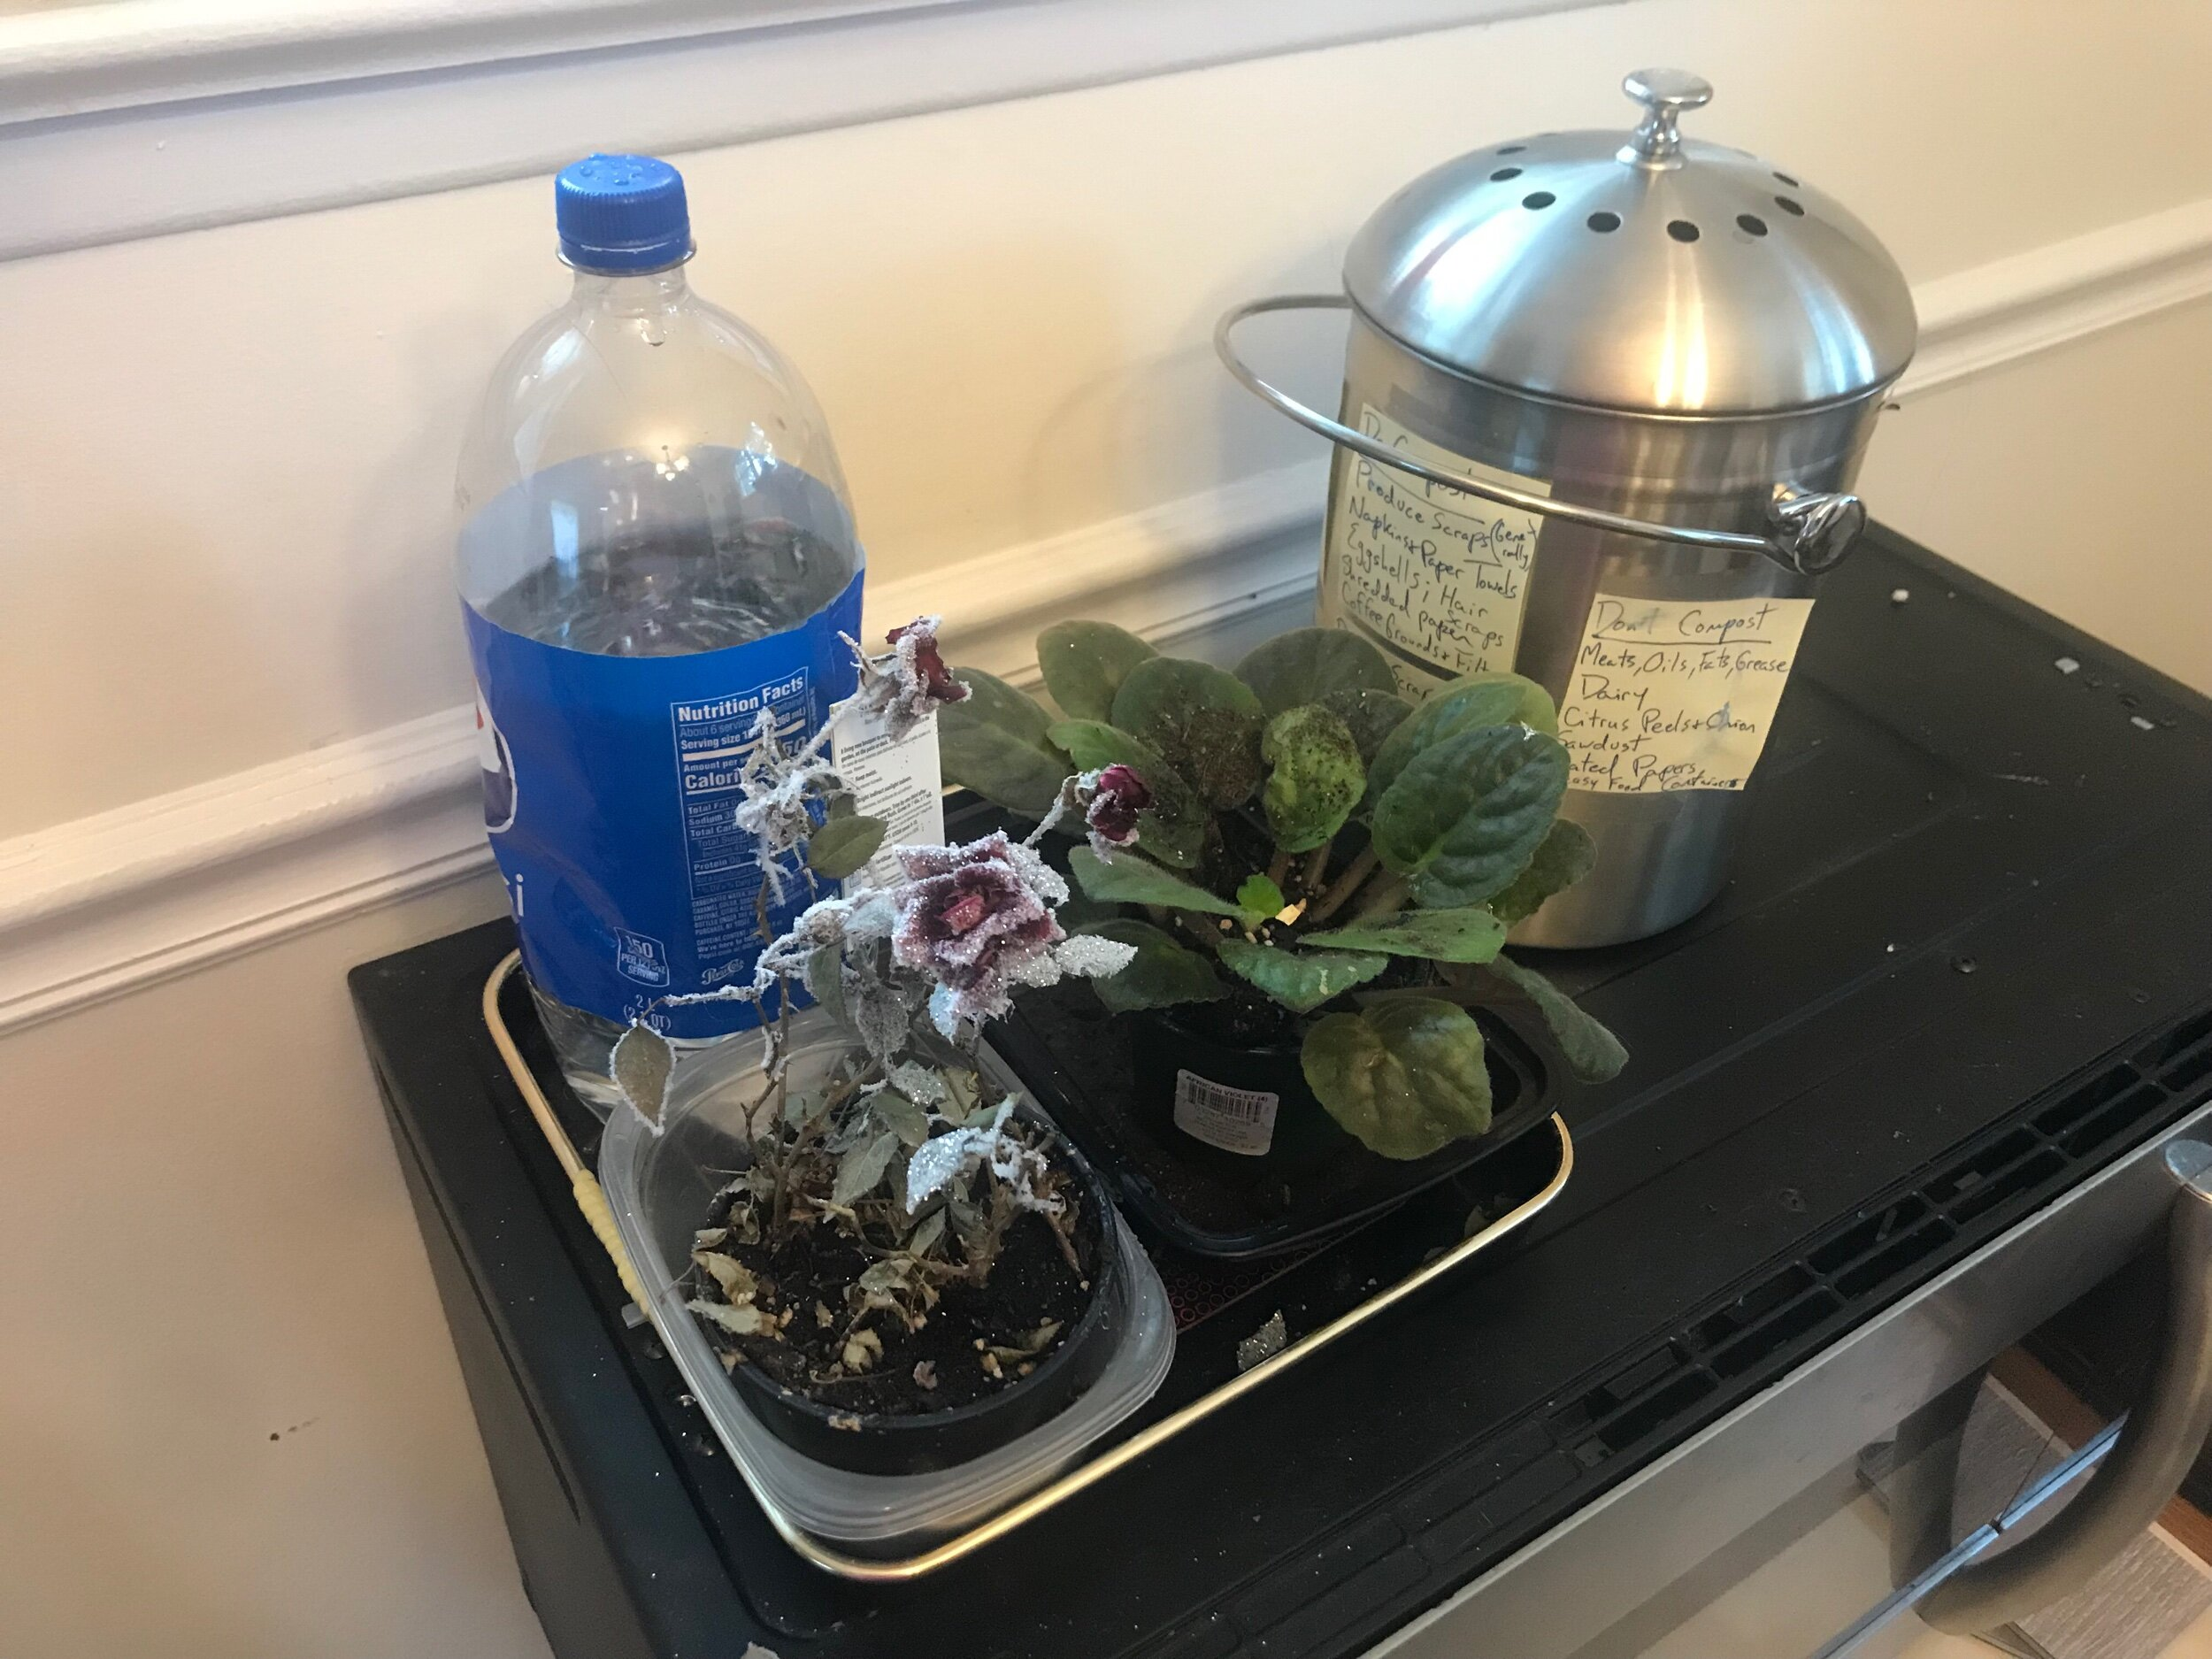 Look! Plants I've somehow kept half alive, plus an old soda bottle I now use to water indoor and outdoor plants, and our compost pail!